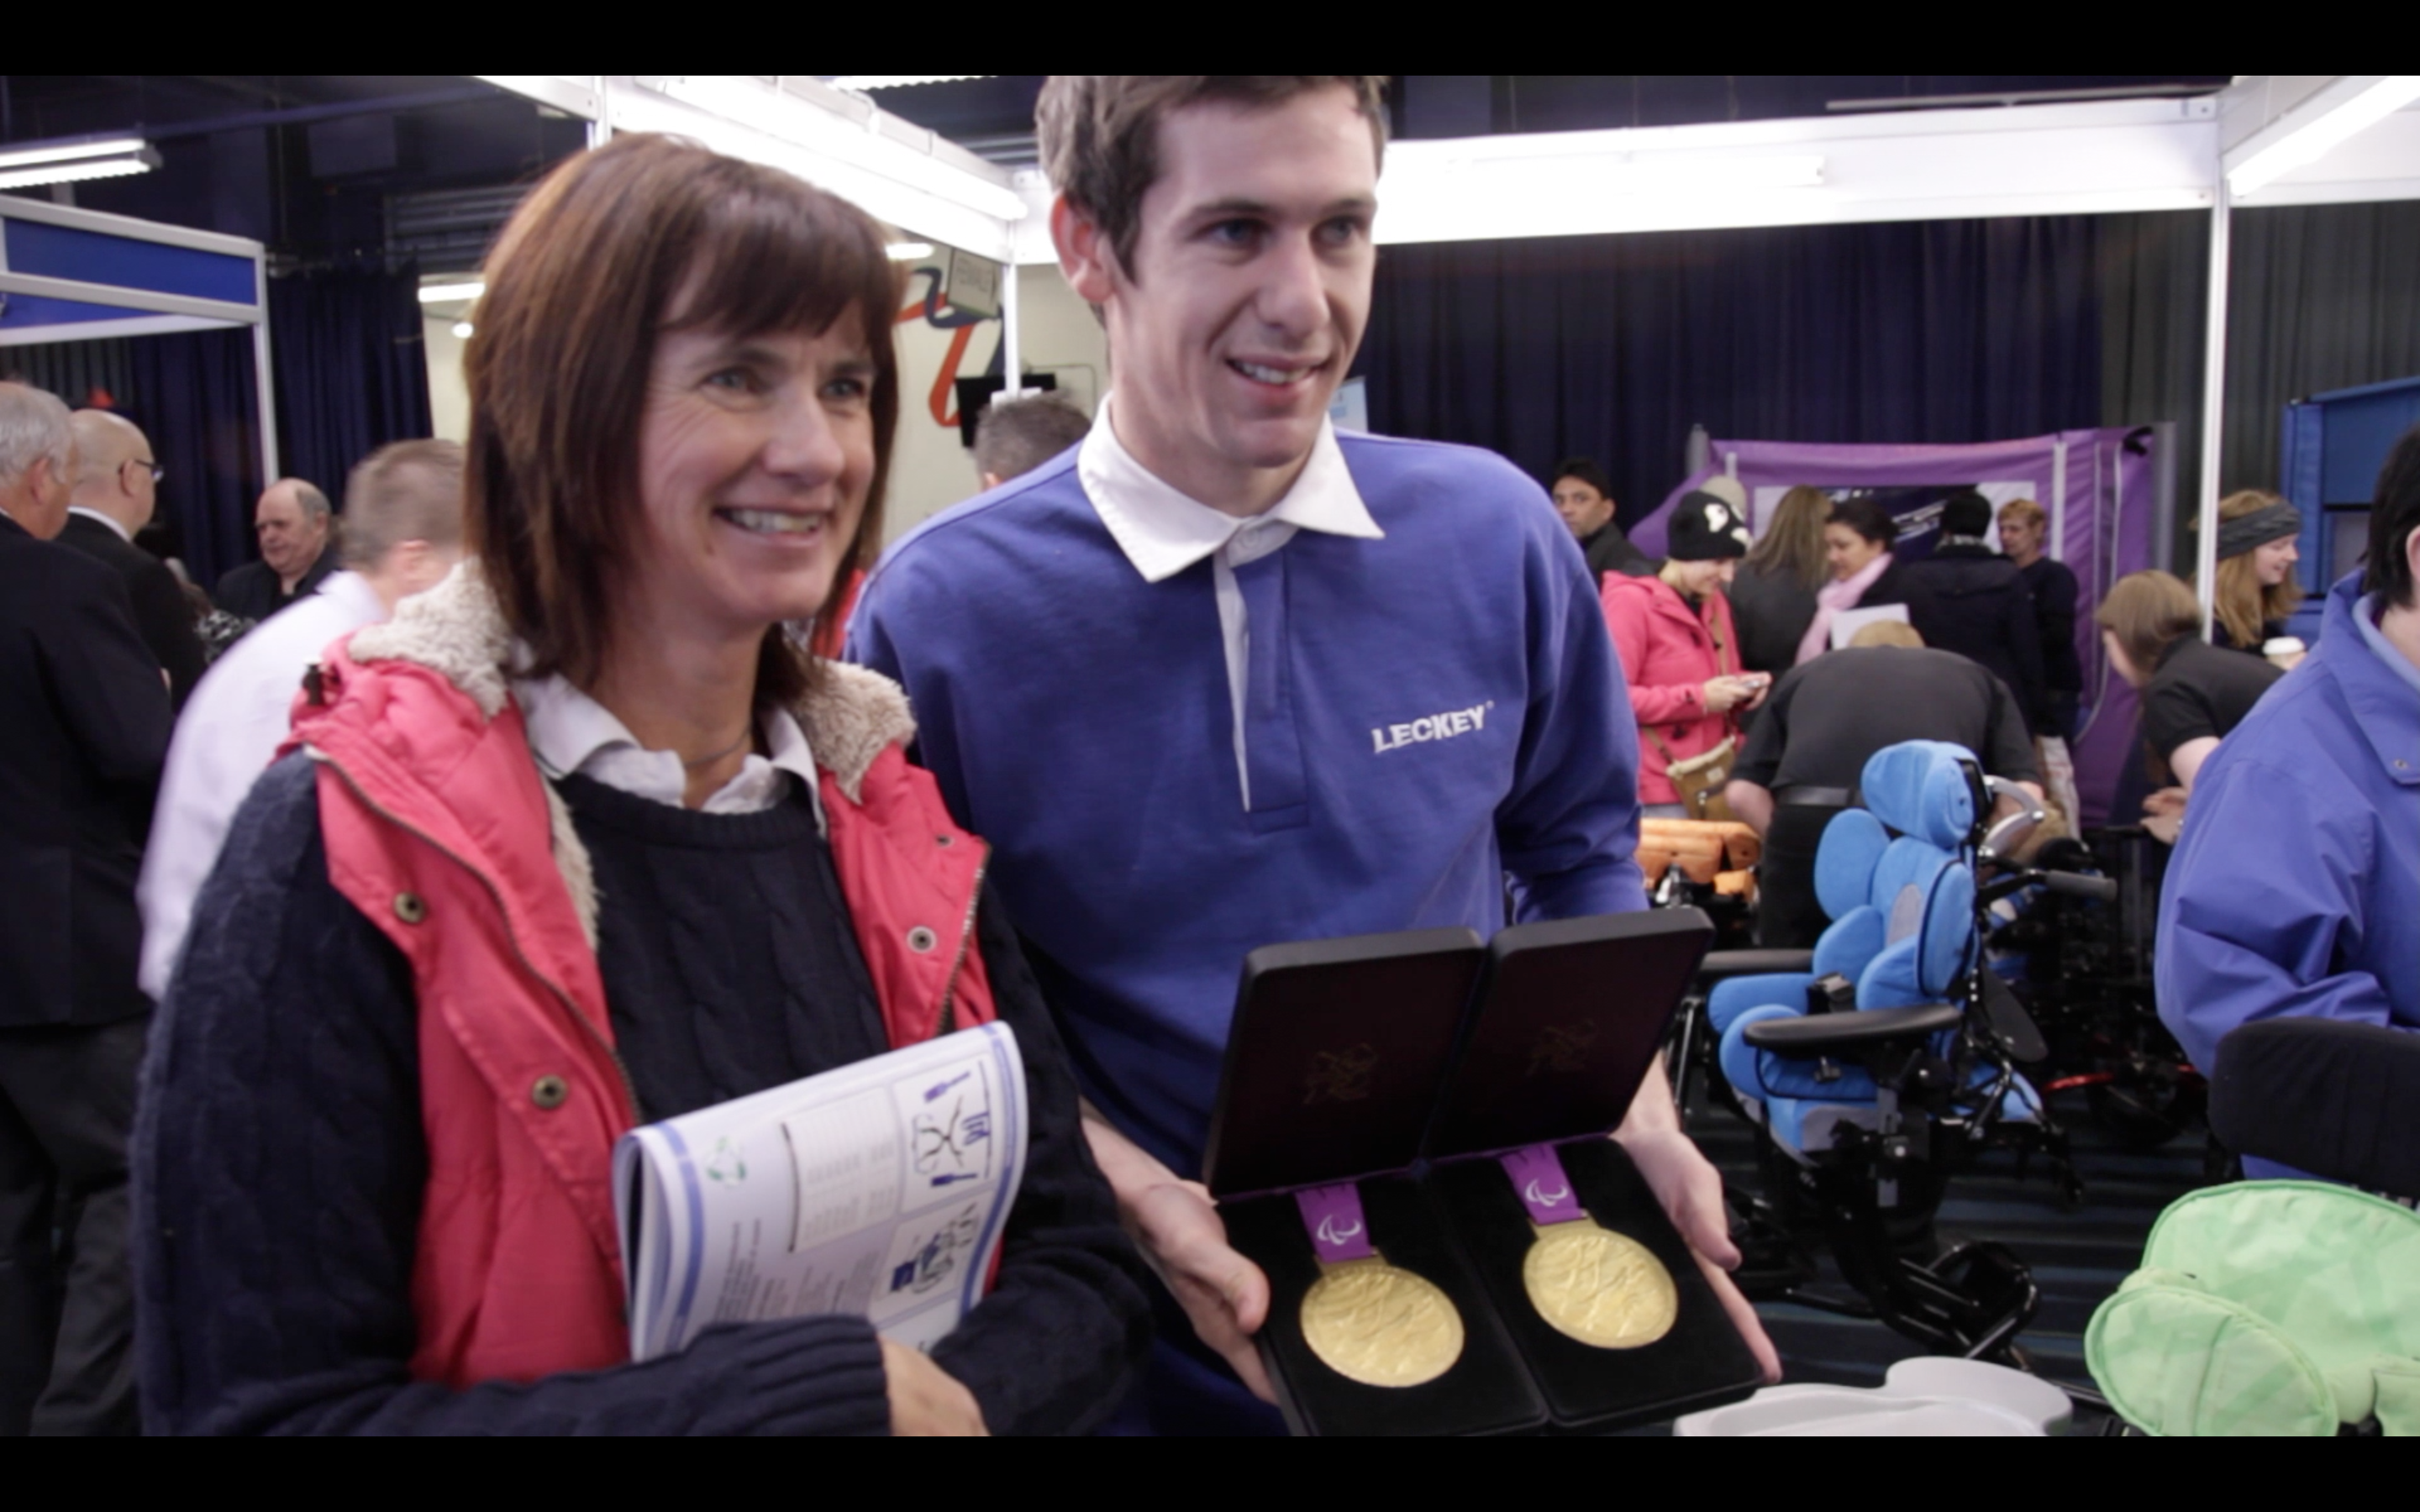 Michael McKillop with his Paralympic Gold Medals at Kidz up North 2012.